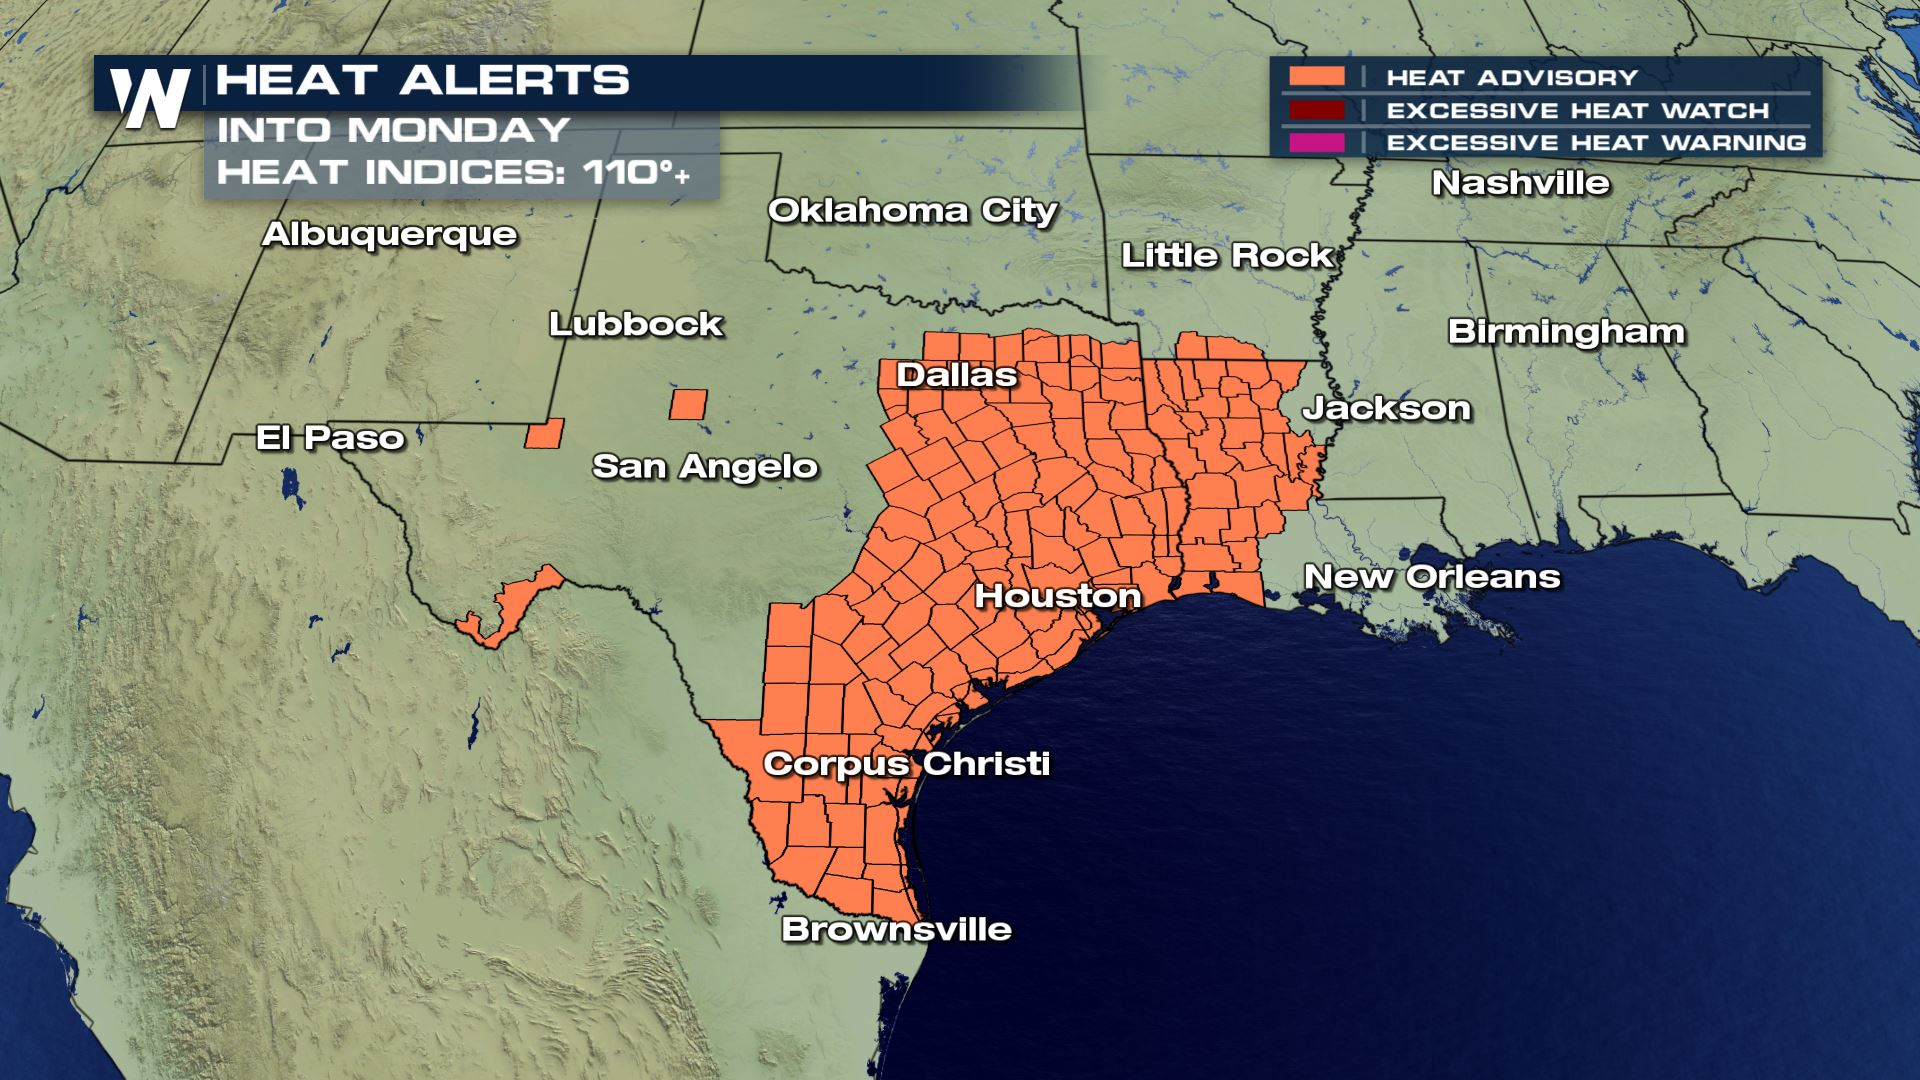 Dangerous heat and humidity Continues Over the South